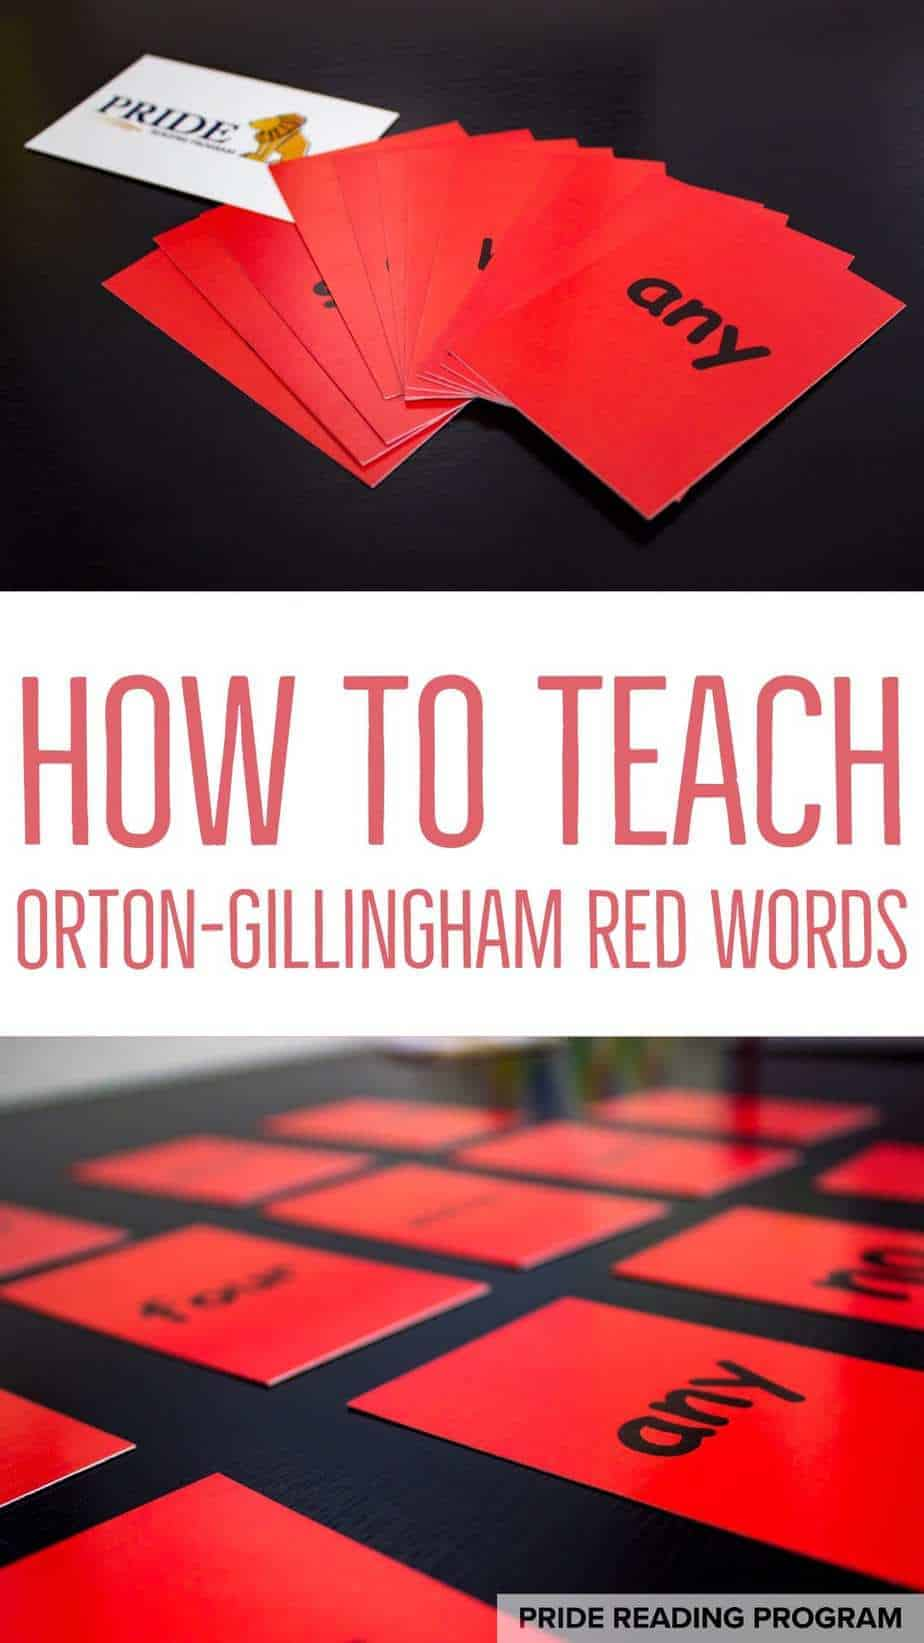 How to teach Orton-Gillingham Red Words (sight words).  Here you can view an Orton-Gillingham lesson - see it here in action! #pridereadingprogram #ortongillingham #teachreading #teachspelling #homeschoolcurriculum #OGtutor #readingtutor #dyslexia